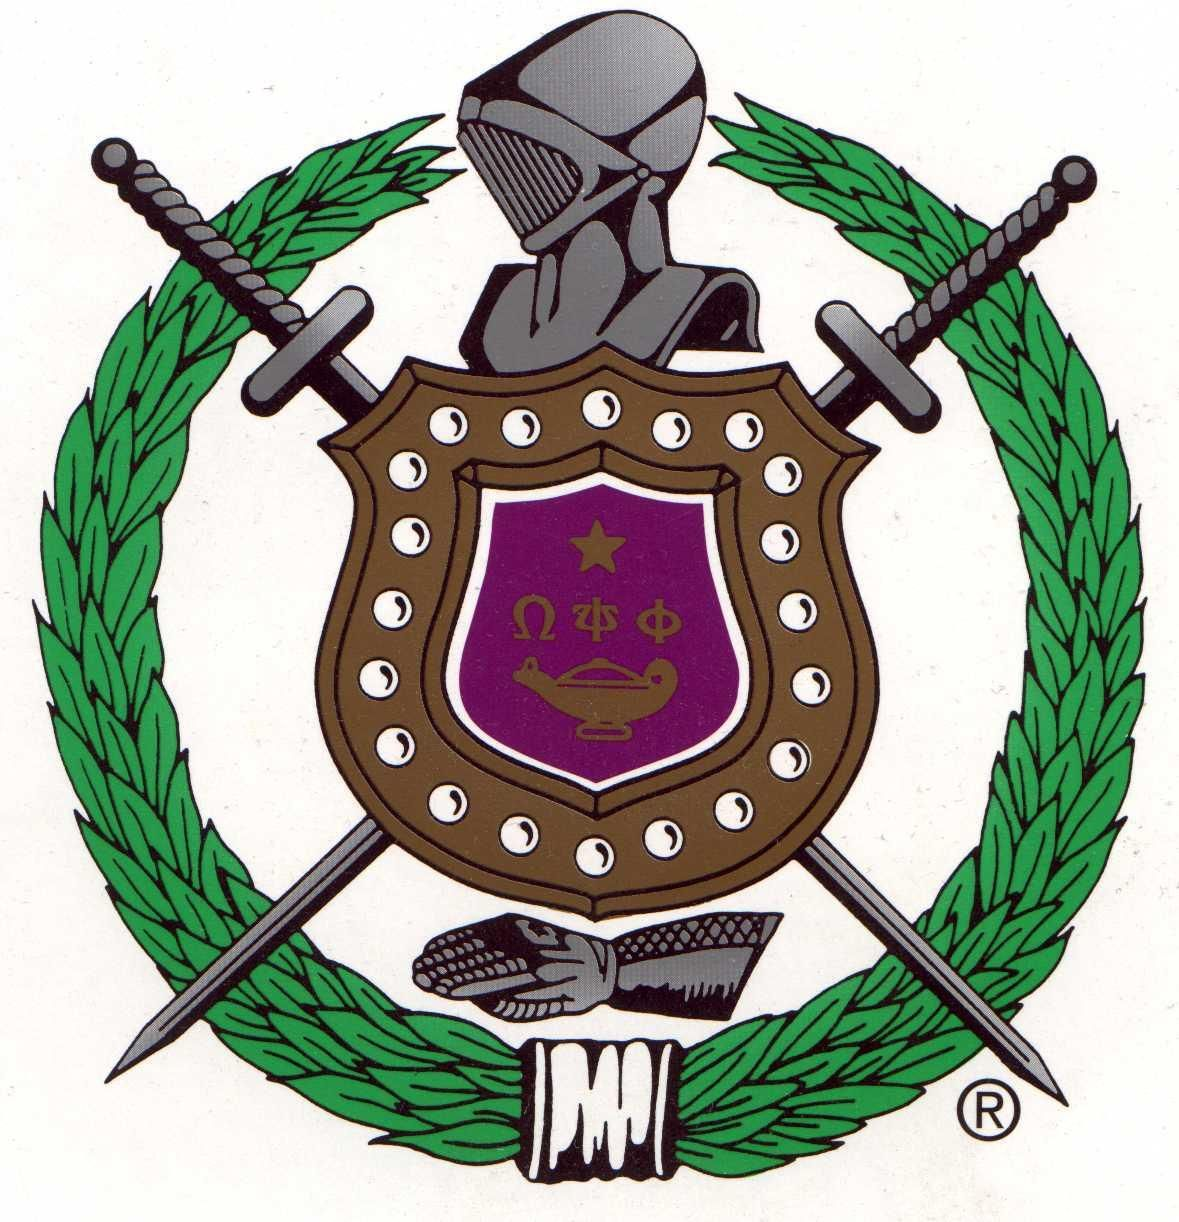 Omega psi phi dads fraternityfall 1962 old school que dog omega psi phi dads fraternityfall 1962 old school que dog buycottarizona Image collections